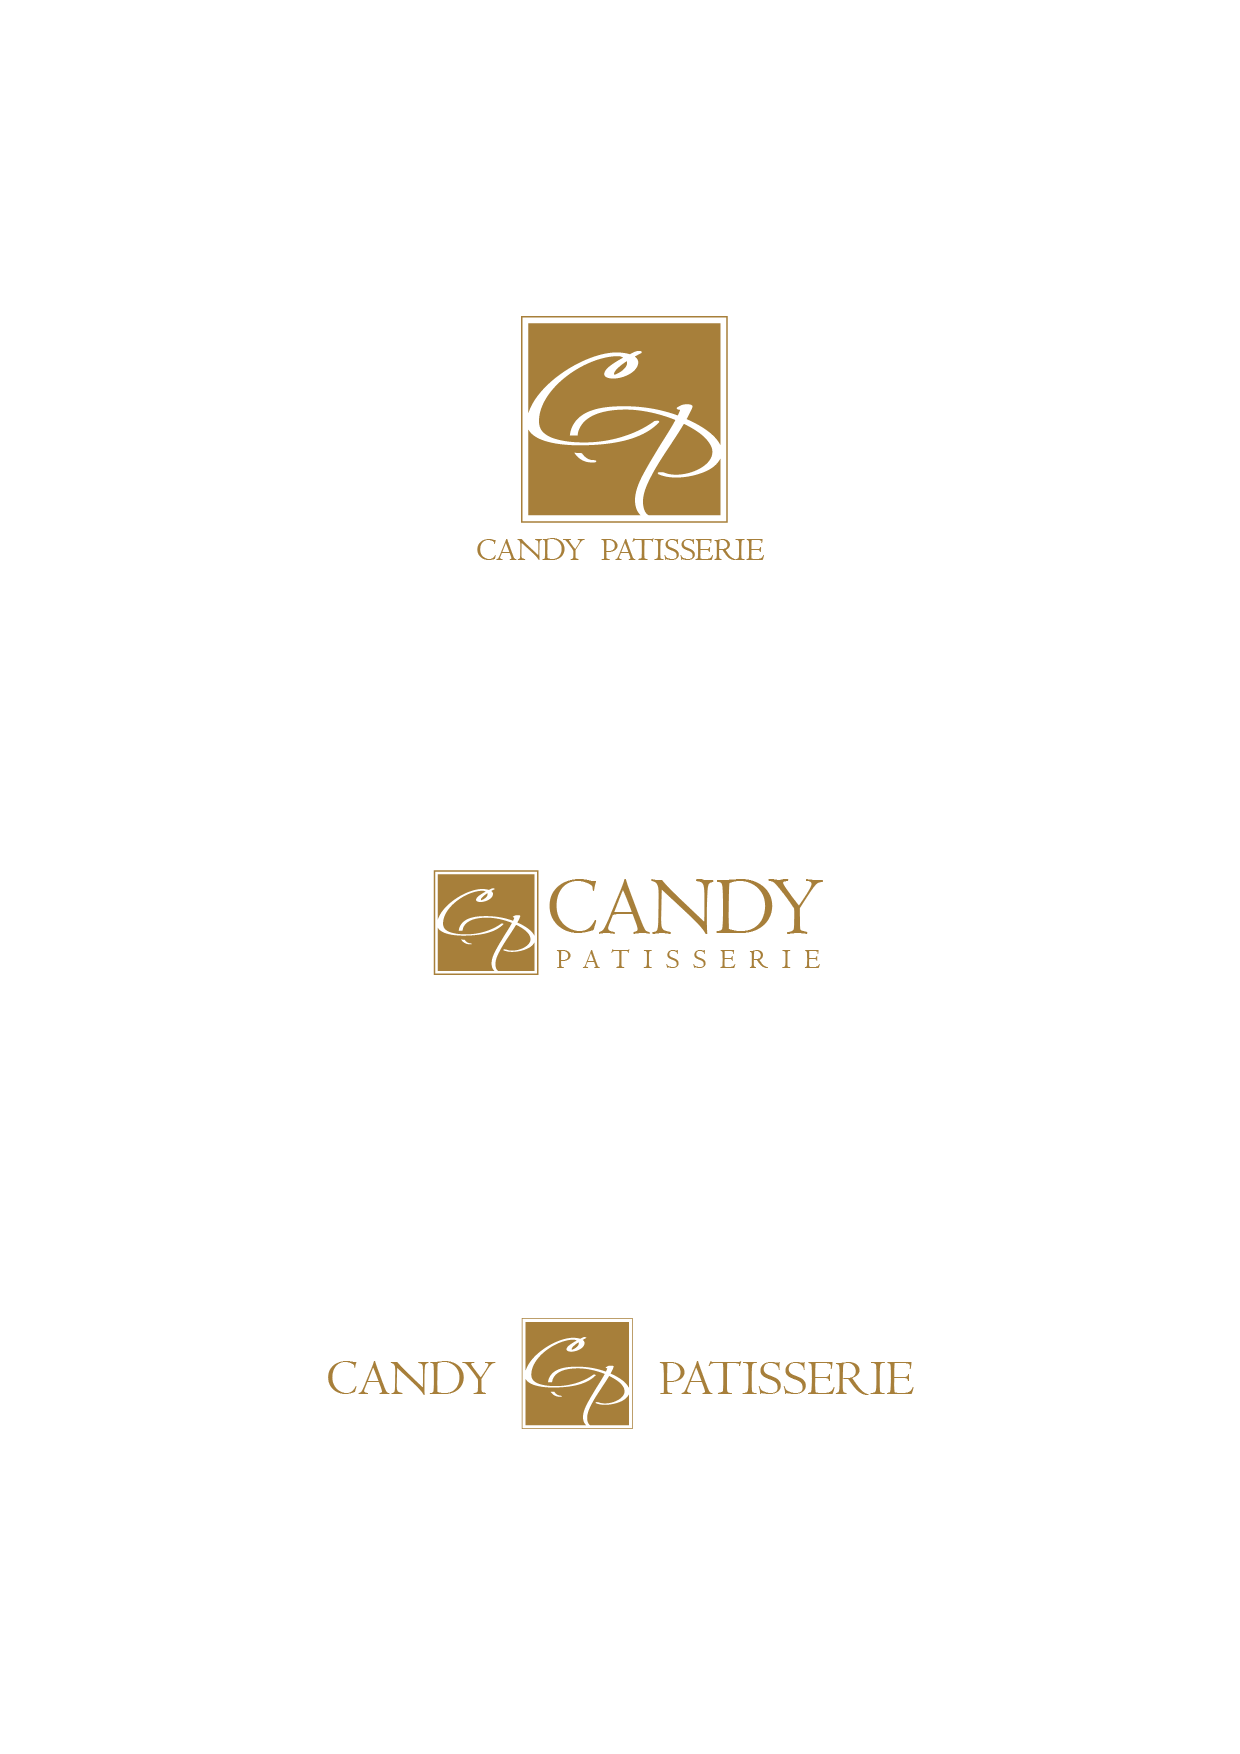 Candy Patisserie's Project